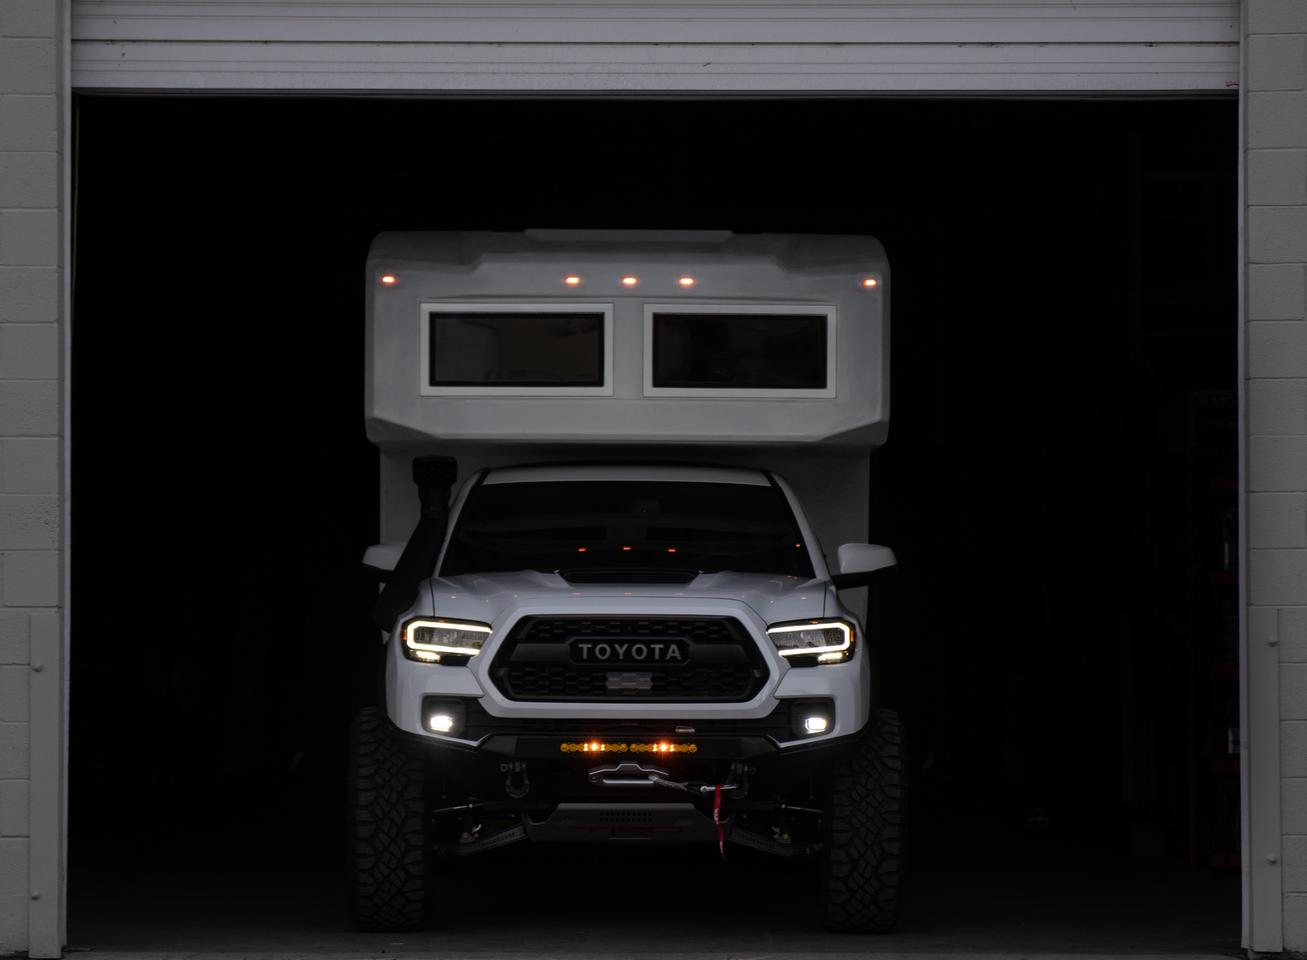 The TruckHouse BCT emerges this week as a compact, go-anywhere expedition vehicle based on the Toyota Tacoma